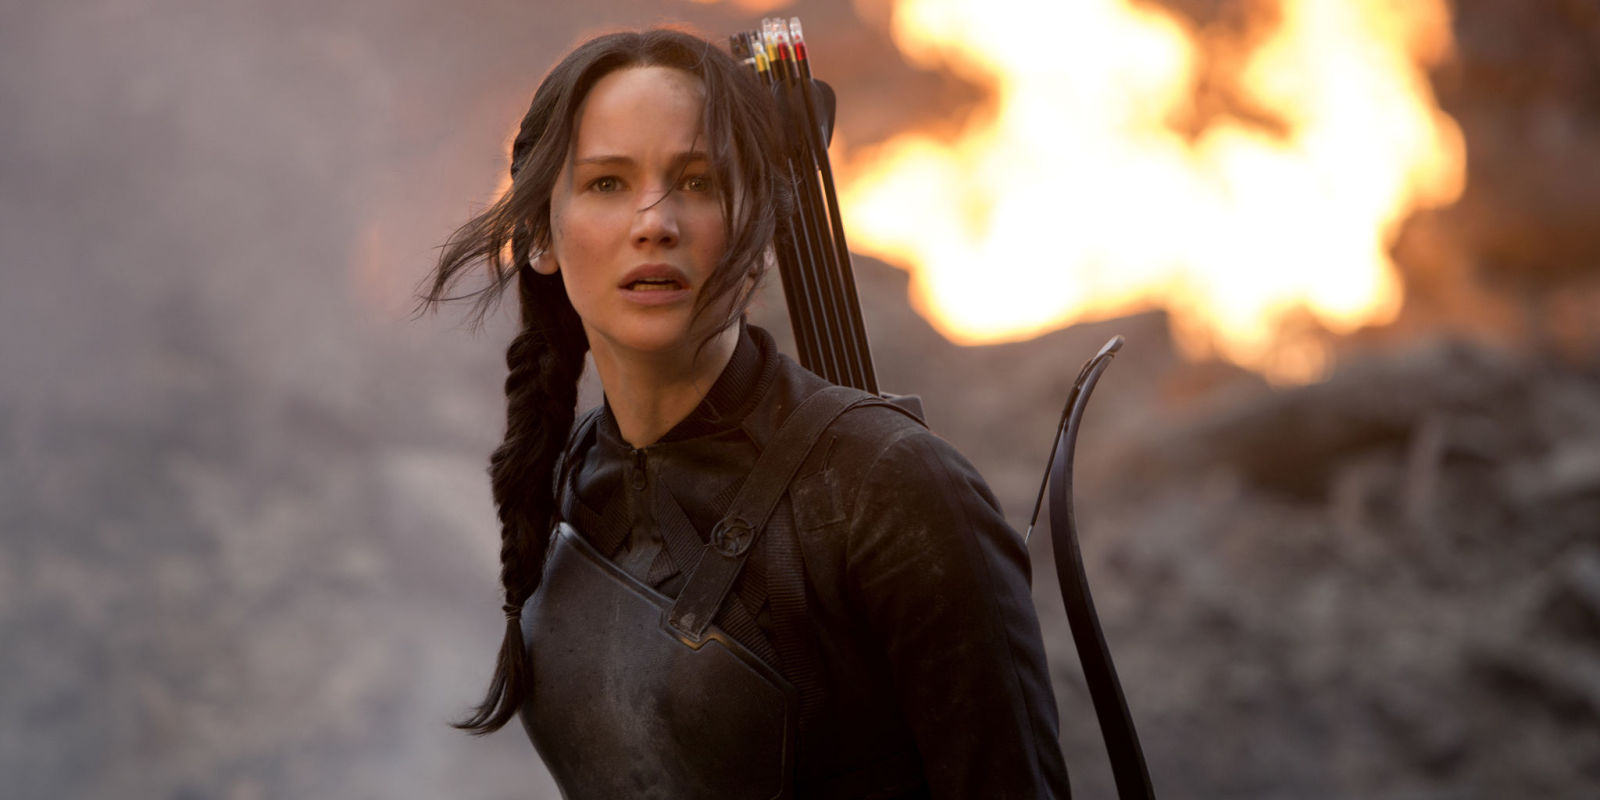 The Hunger Games: Mockingjay - Part 2 unveils explosive teaser video